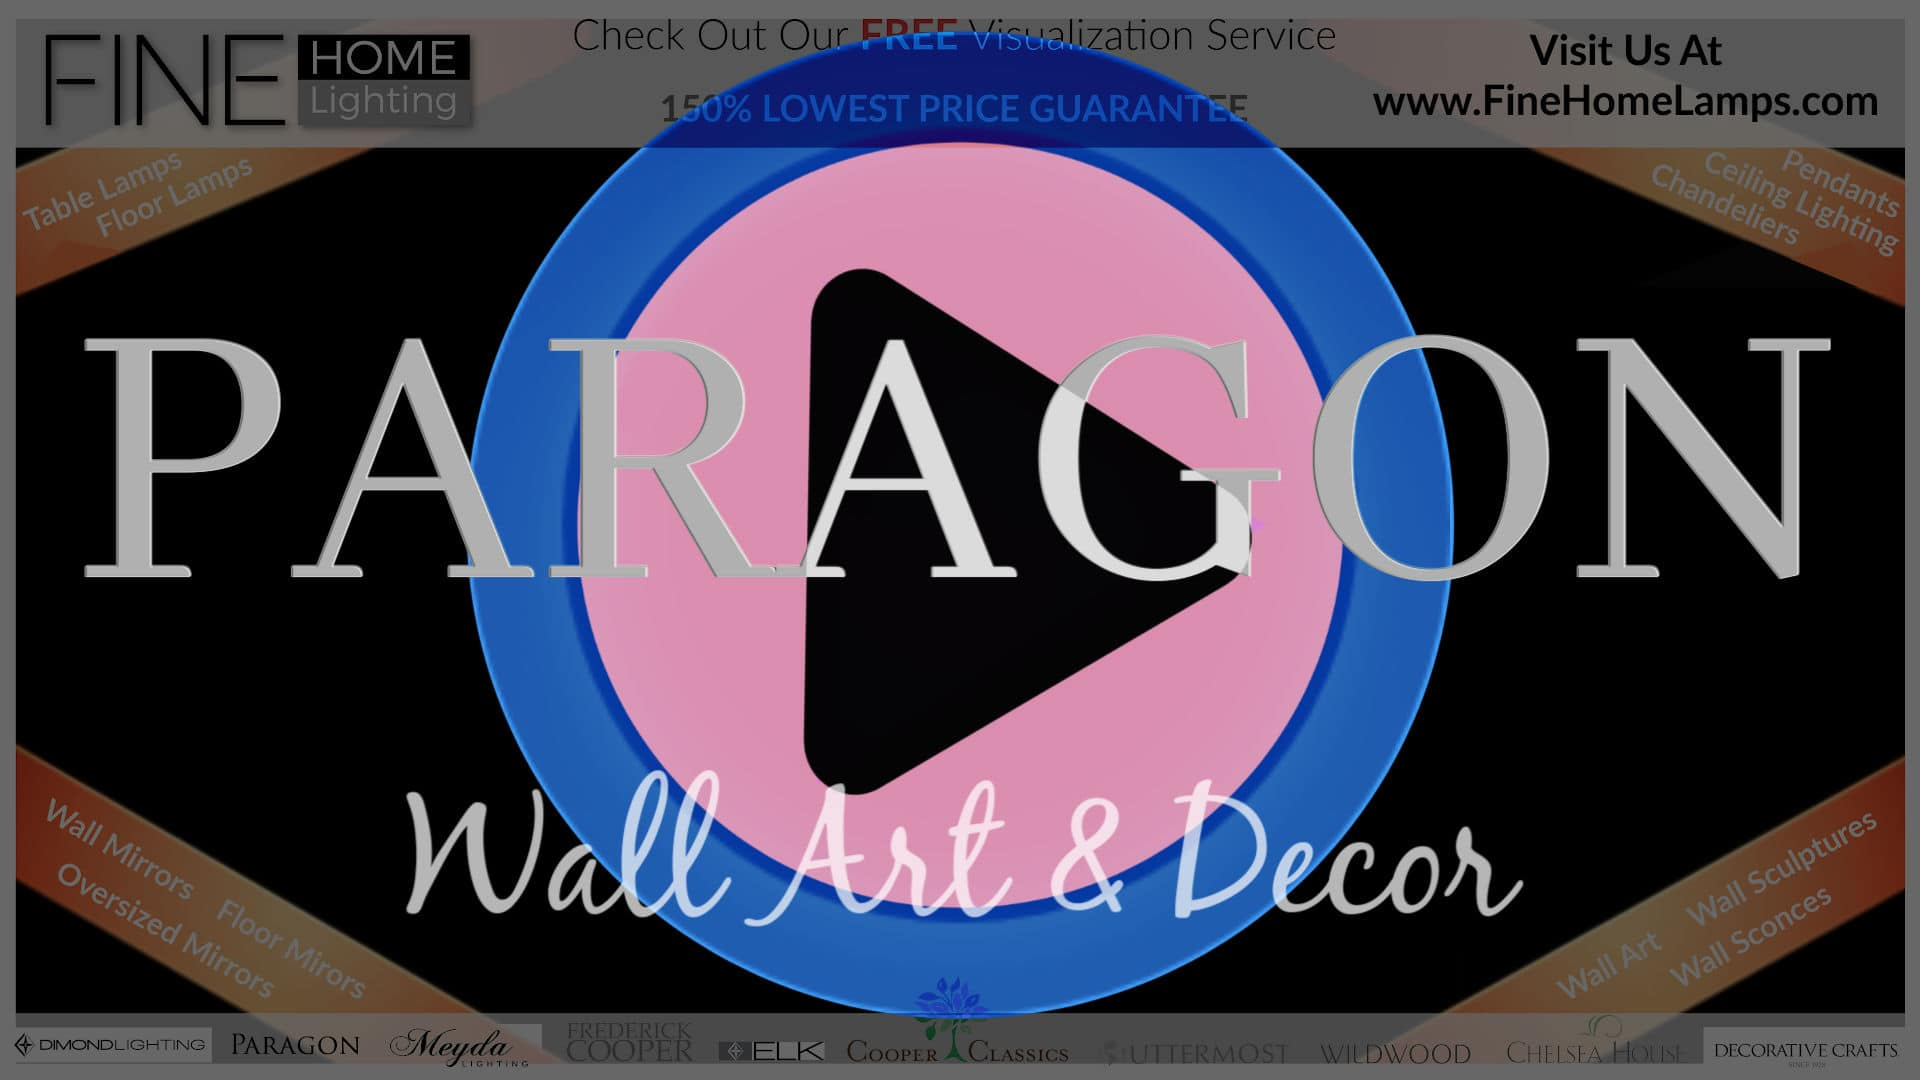 Paragon-Wall-Art-Decor-Thanks-for-watching-this-video-Get-an-additional-15-percent-off-your-next-purchase-Use-Coupon-Code-VIDEO